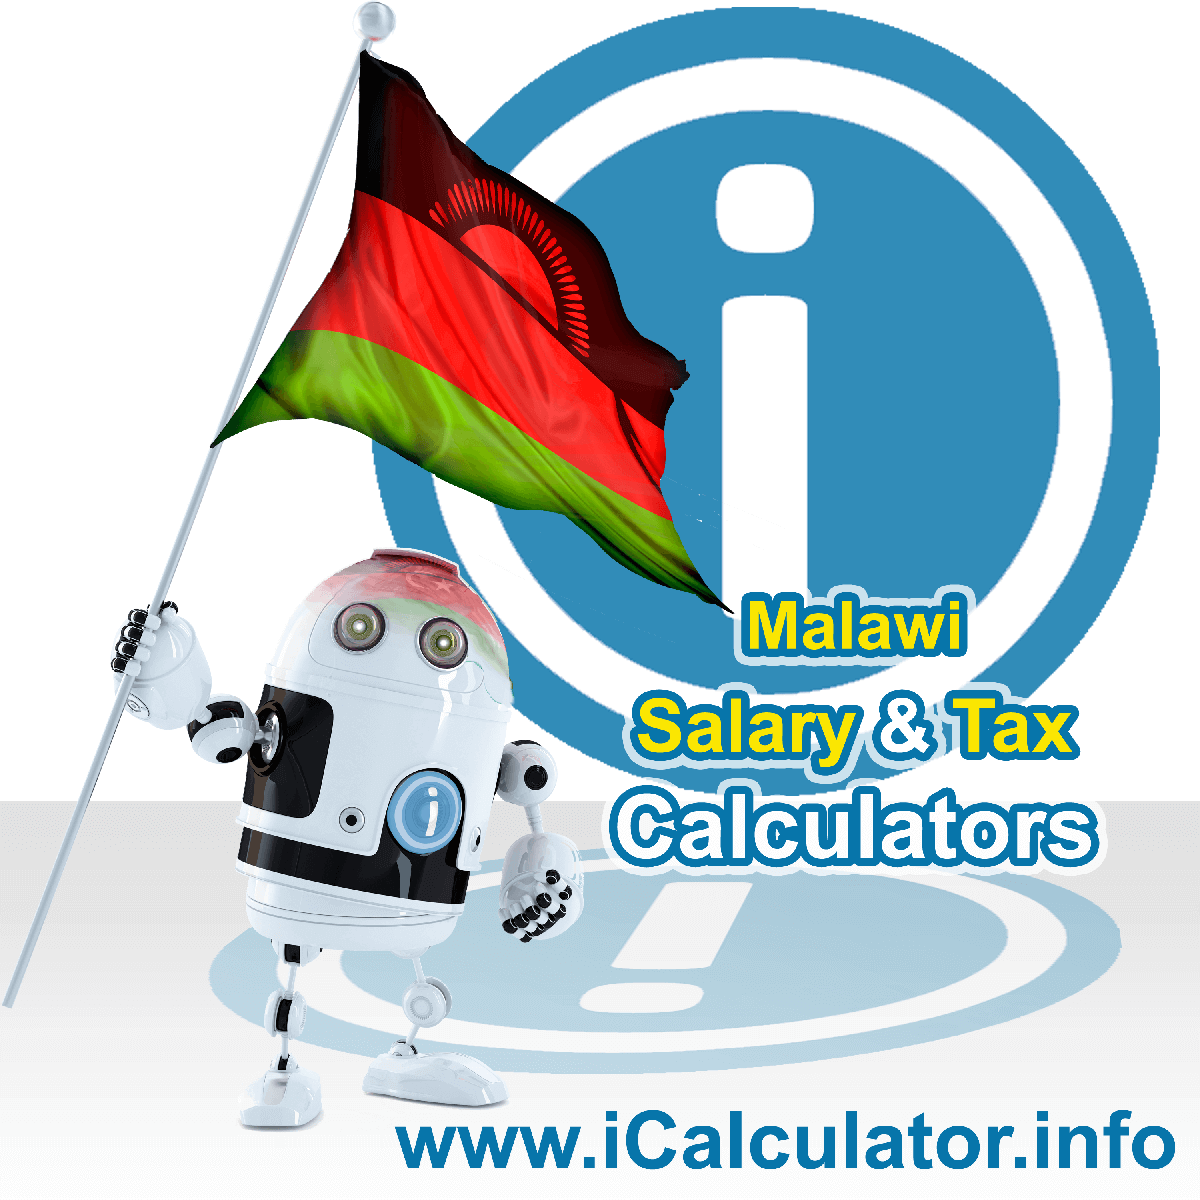 Malawi Tax Calculator. This image shows the Malawi flag and information relating to the tax formula for the Malawi Salary Calculator